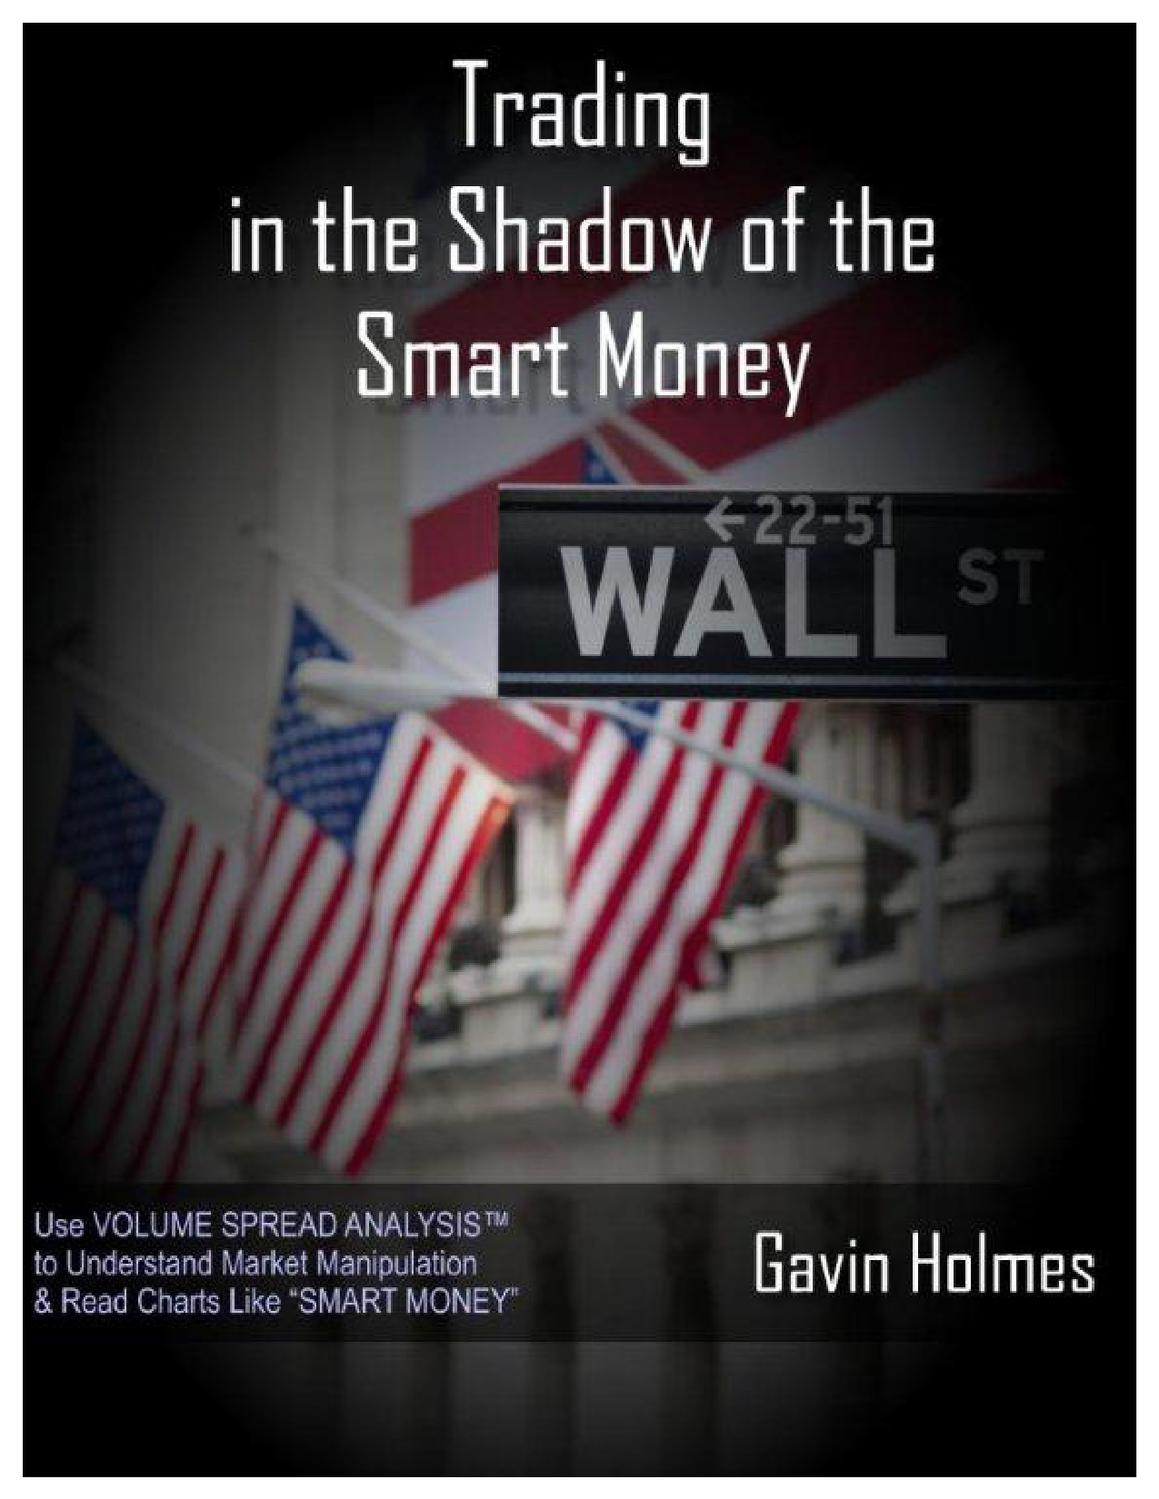 tradingintheshadow by Magna Forex Signals - issuu